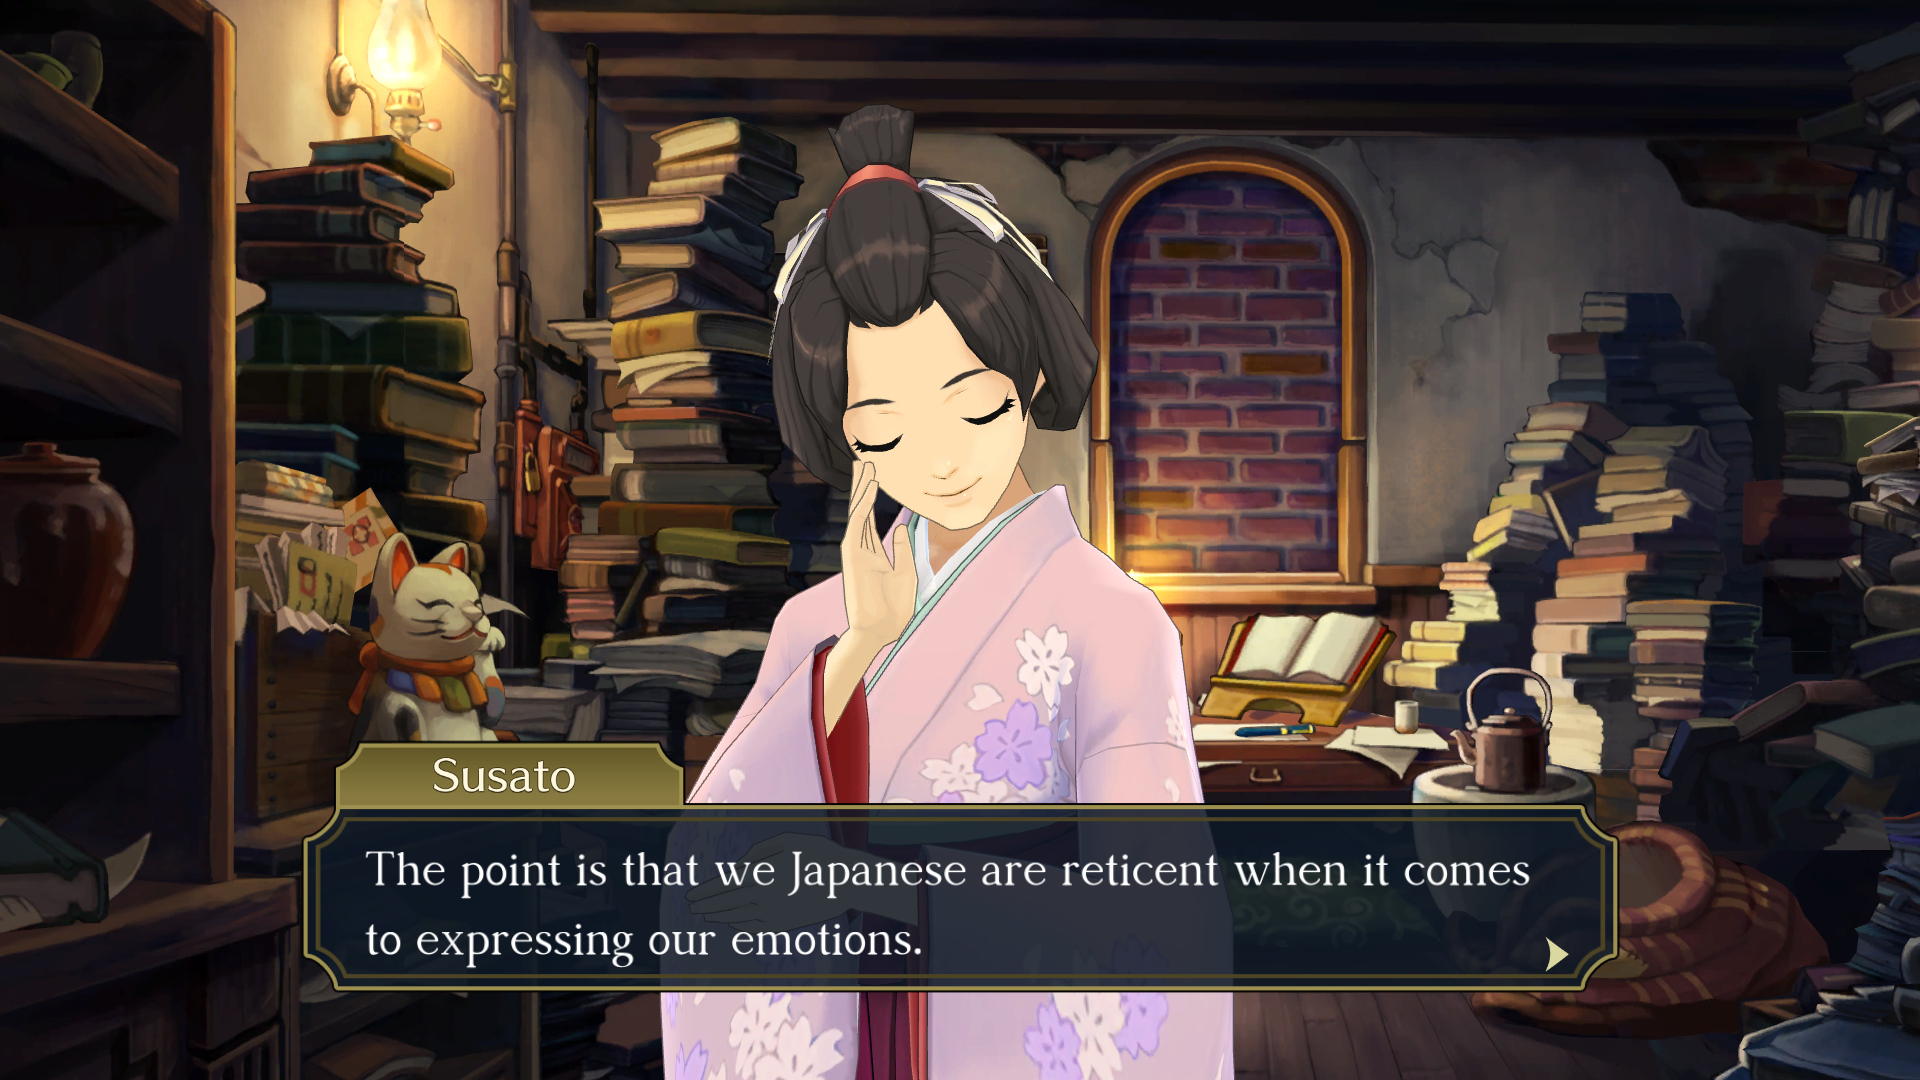 """The Great Ace Attorney Chronicles - Susato says: """"The point is that we Japanese are reticent when it comes to expressing our emotions."""""""